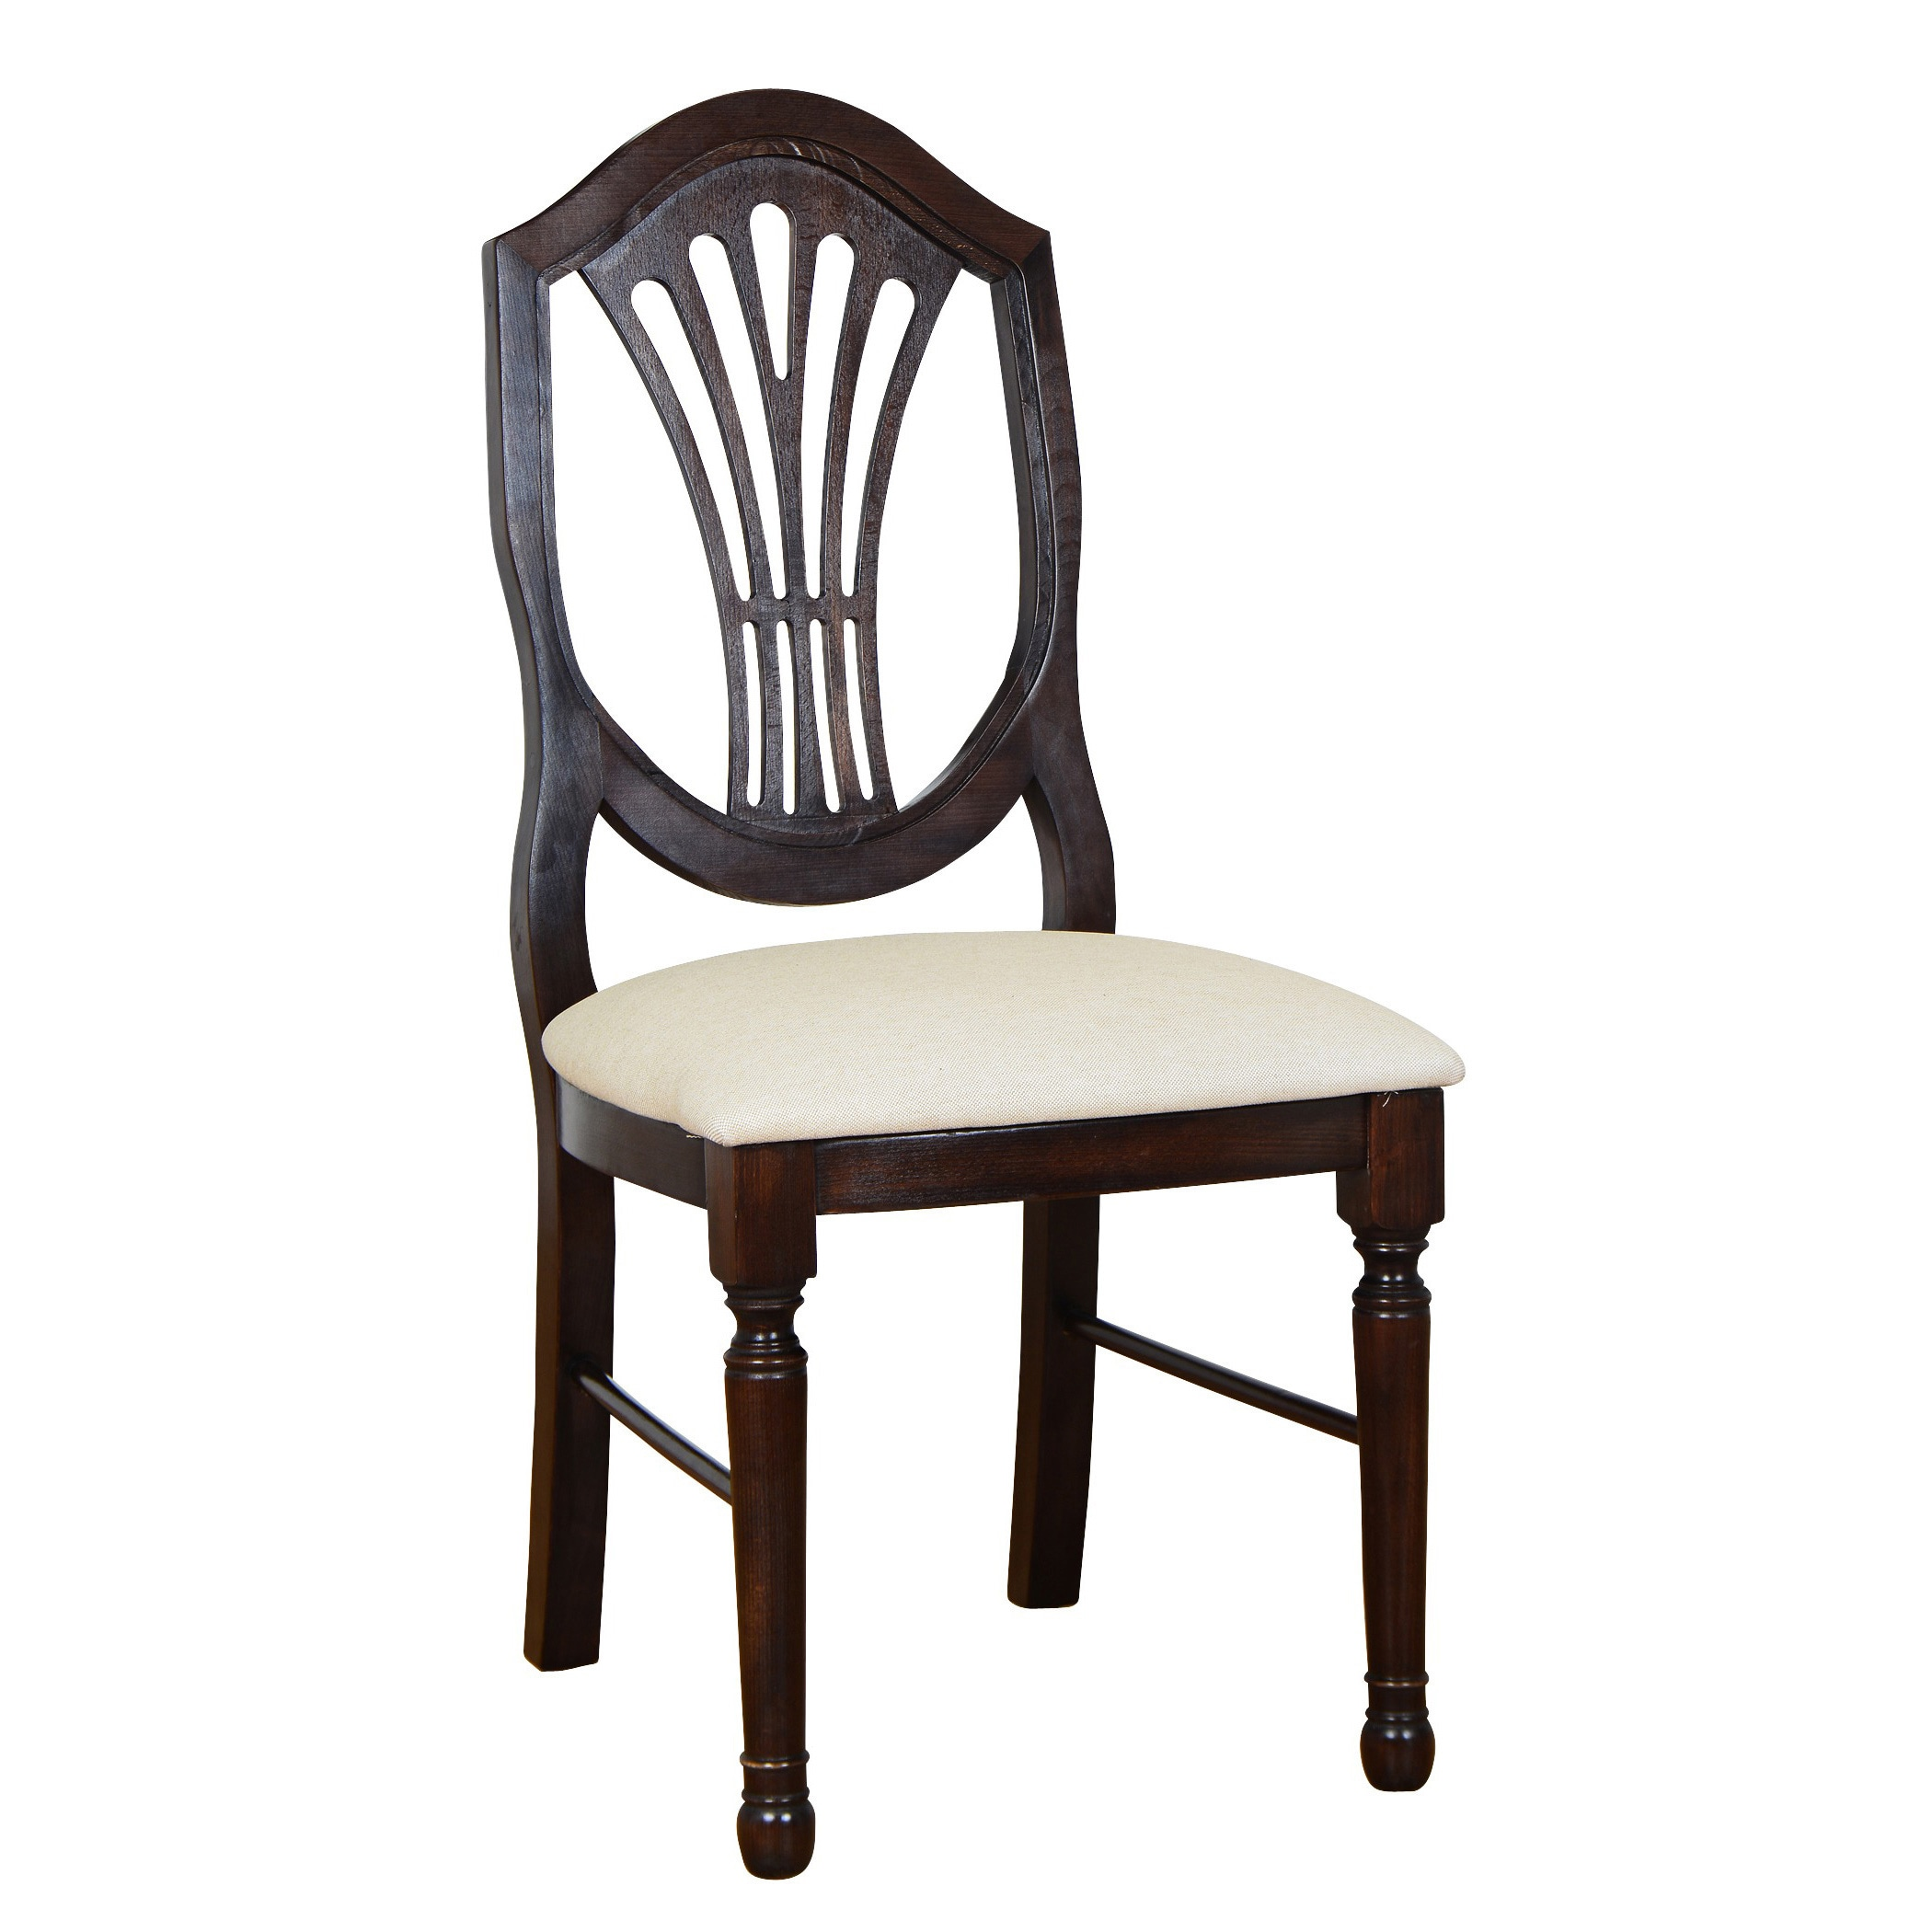 Shop Buckingham Dining Chair - On Sale - Free Shipping Today - Overstock.com - 10910426  sc 1 st  Overstock.com : chair buckingham - Cheerinfomania.Com